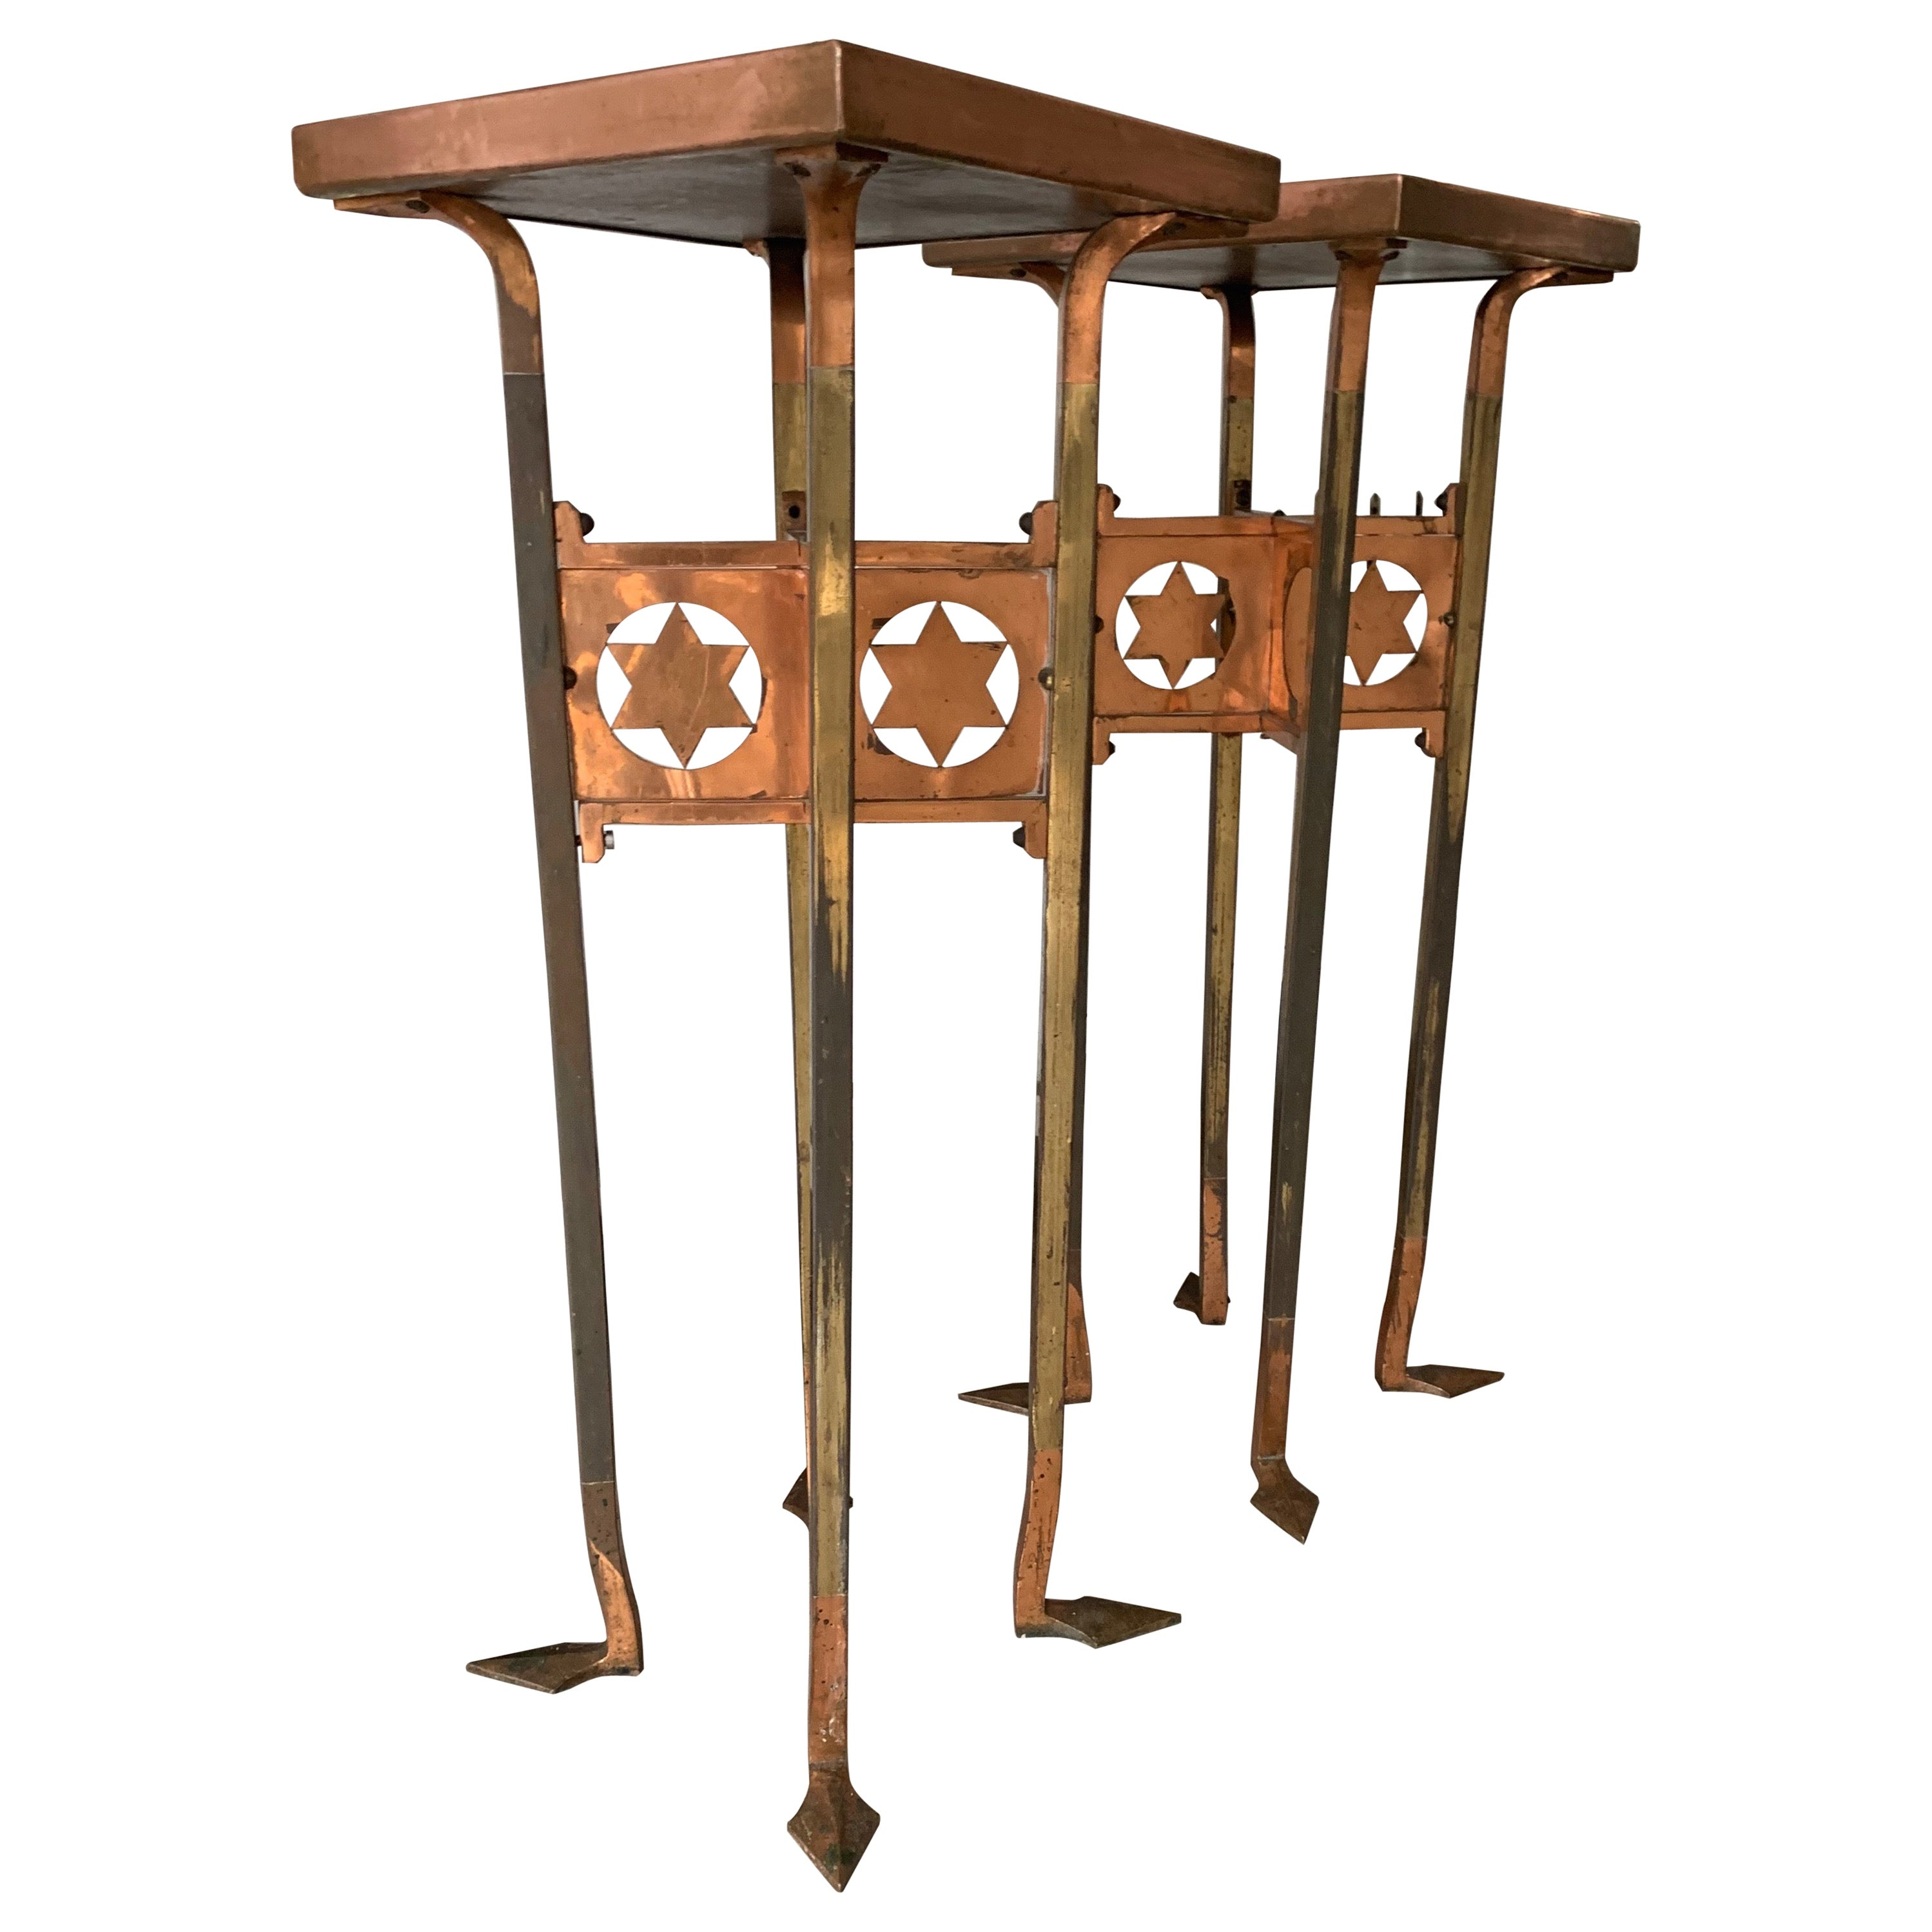 Striking and Top Quality Made Pair of Solid Brass Arts & Crafts Pedestal Stands